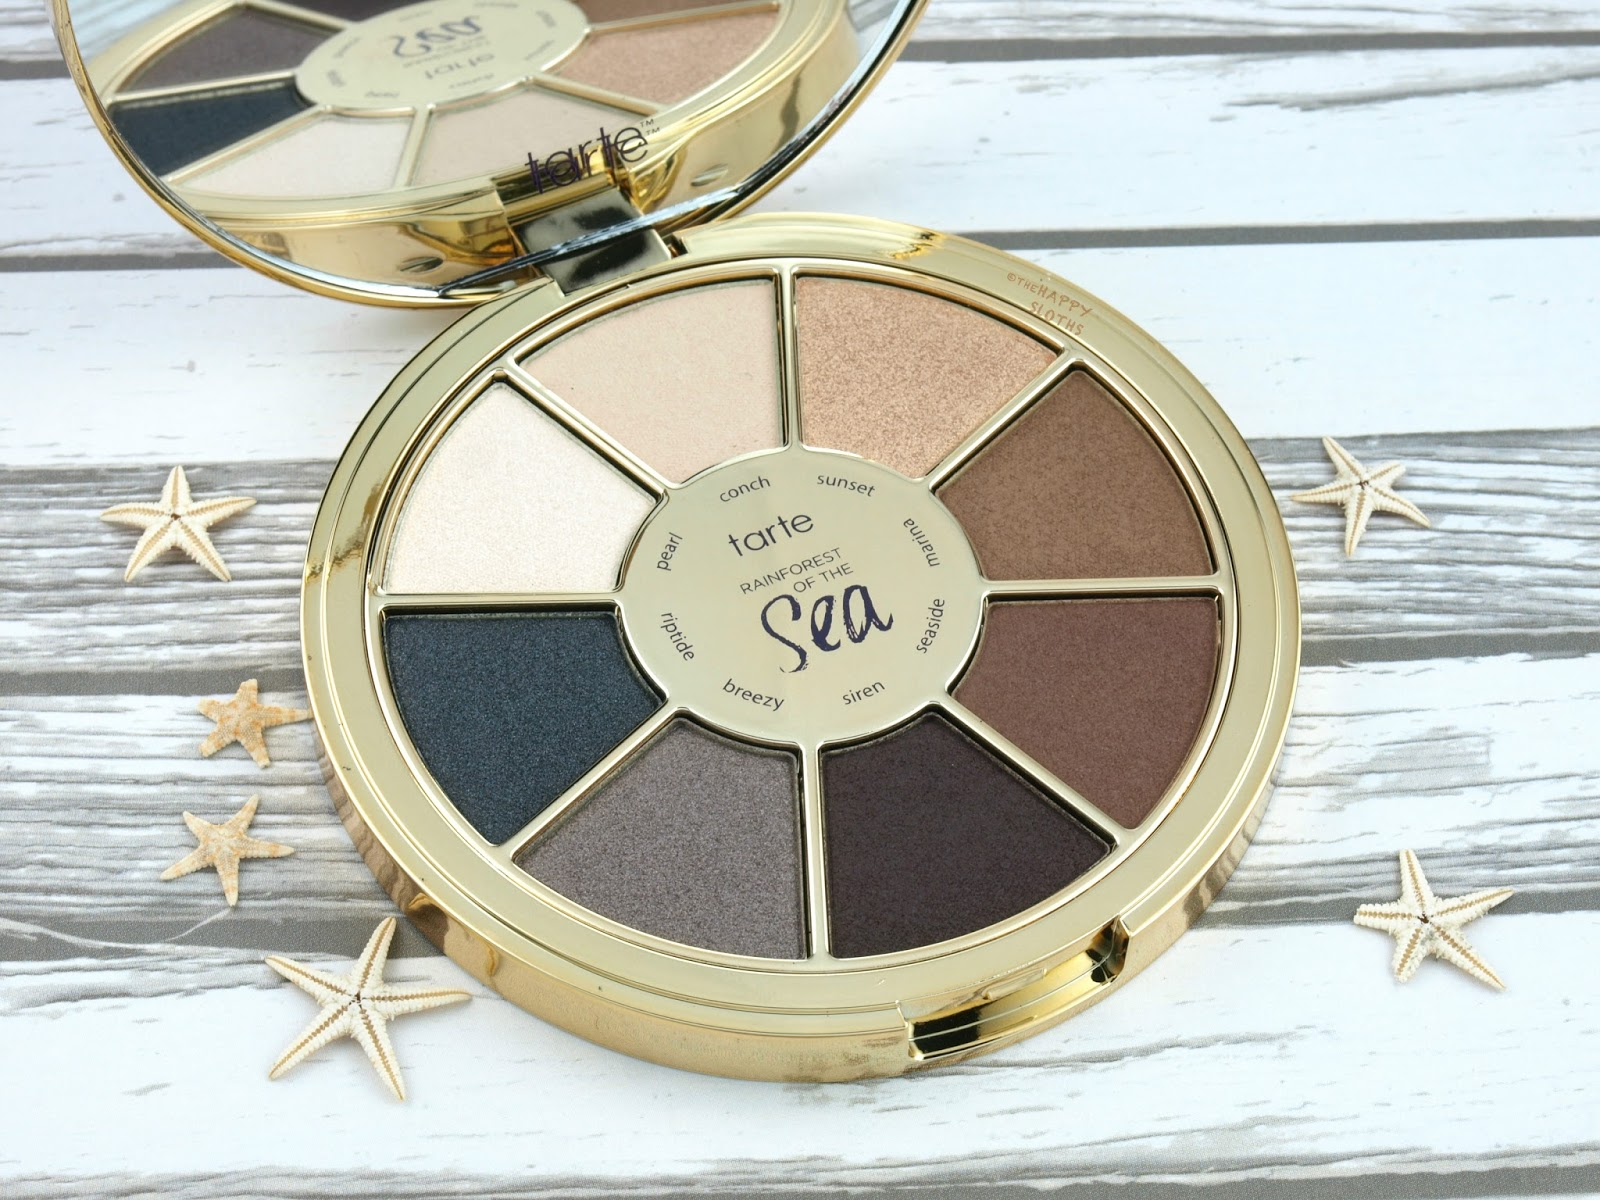 Tarte Rainforest of the Sea Vol. II Eyeshadow Palette: Review and Swatches